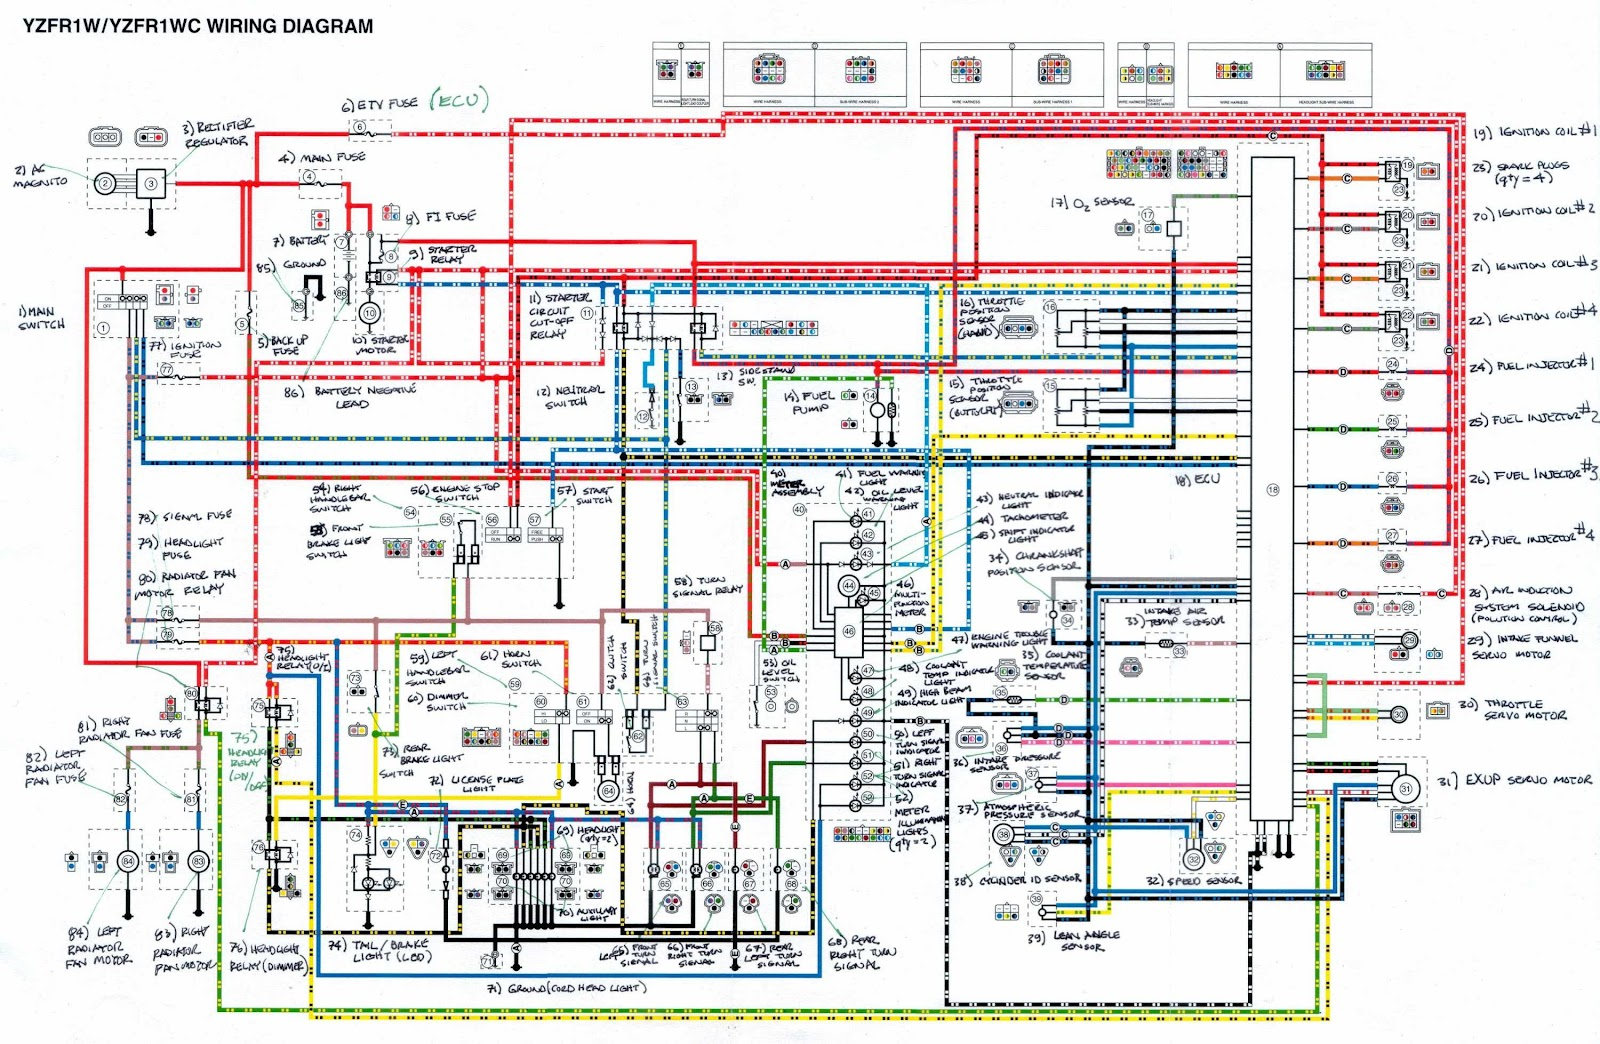 Yamaha YZFR1 Motorcycle Wiring Diagram | All about Wiring